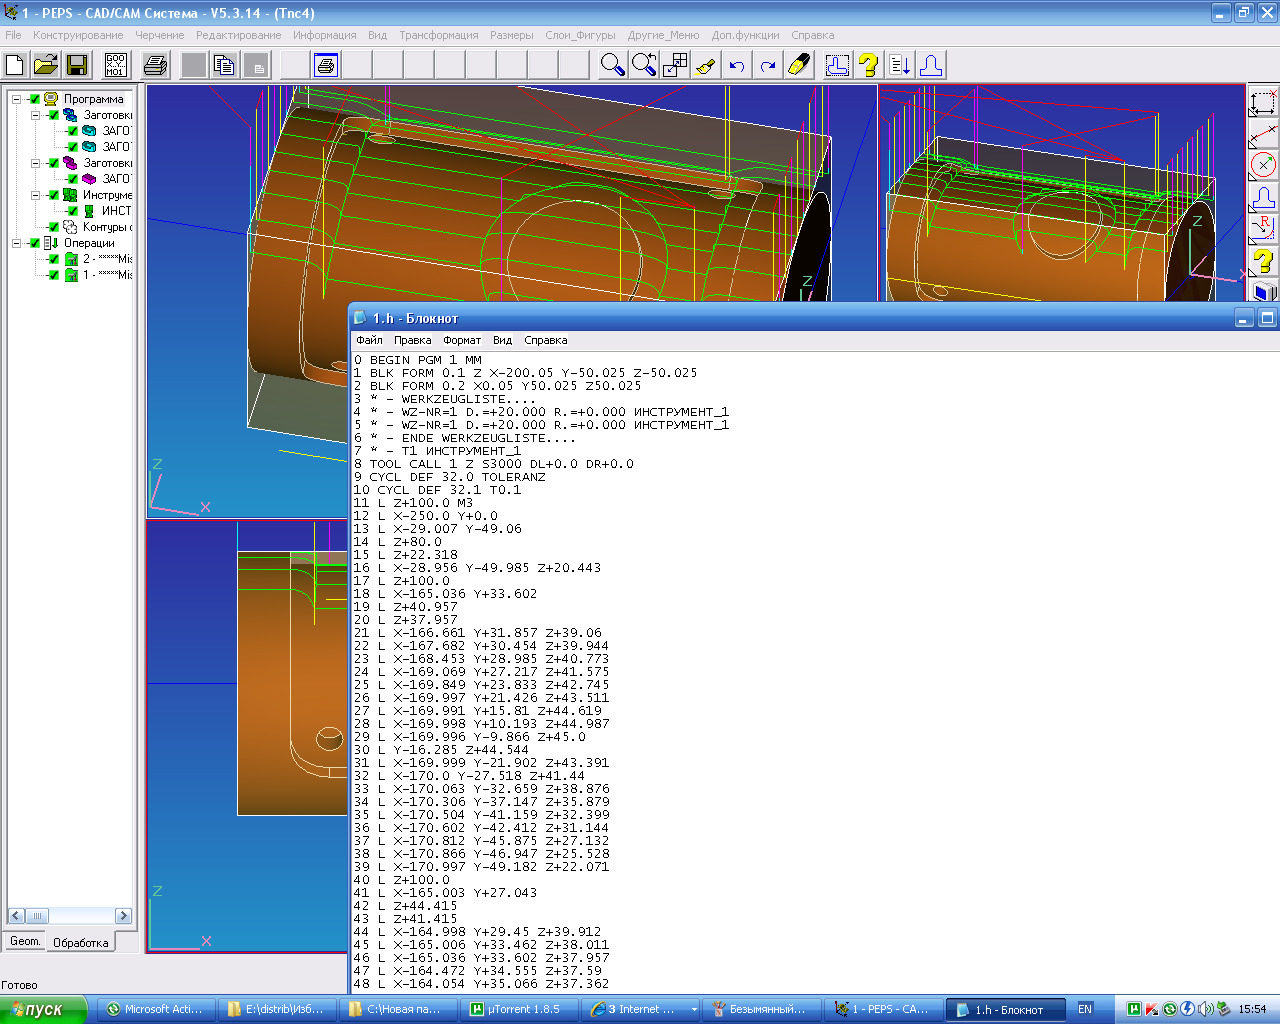 Simulation with PEPS CAD CAM system 5.3.14